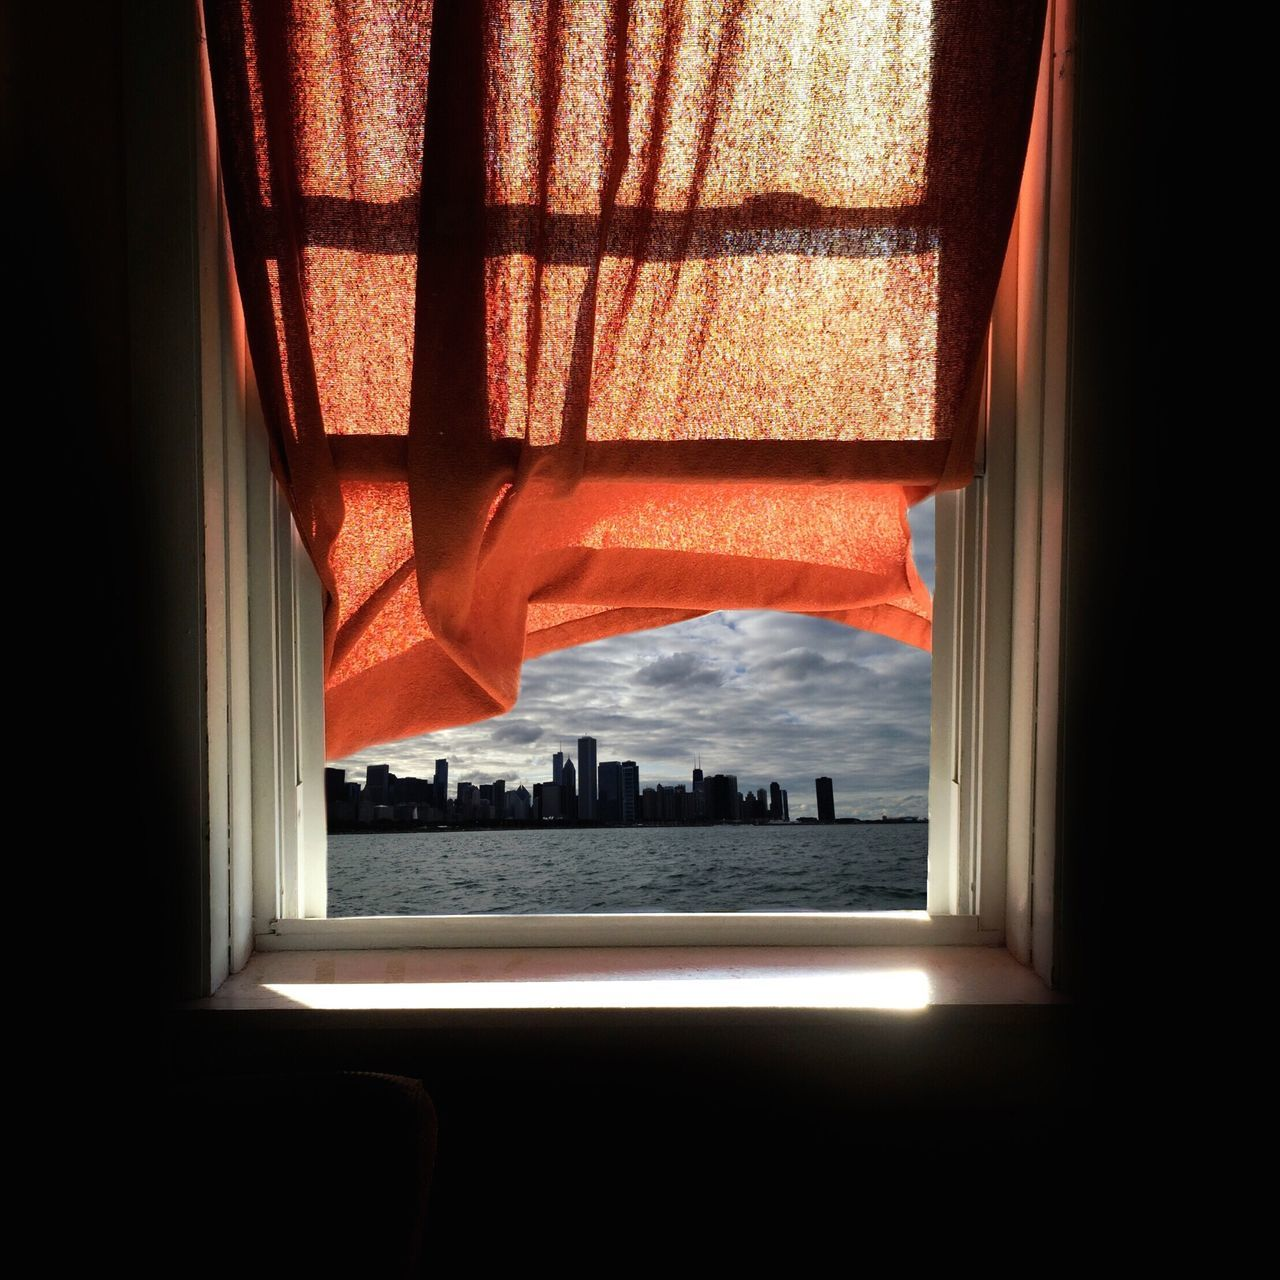 Window with red curtain looking to the city of skyscrapers